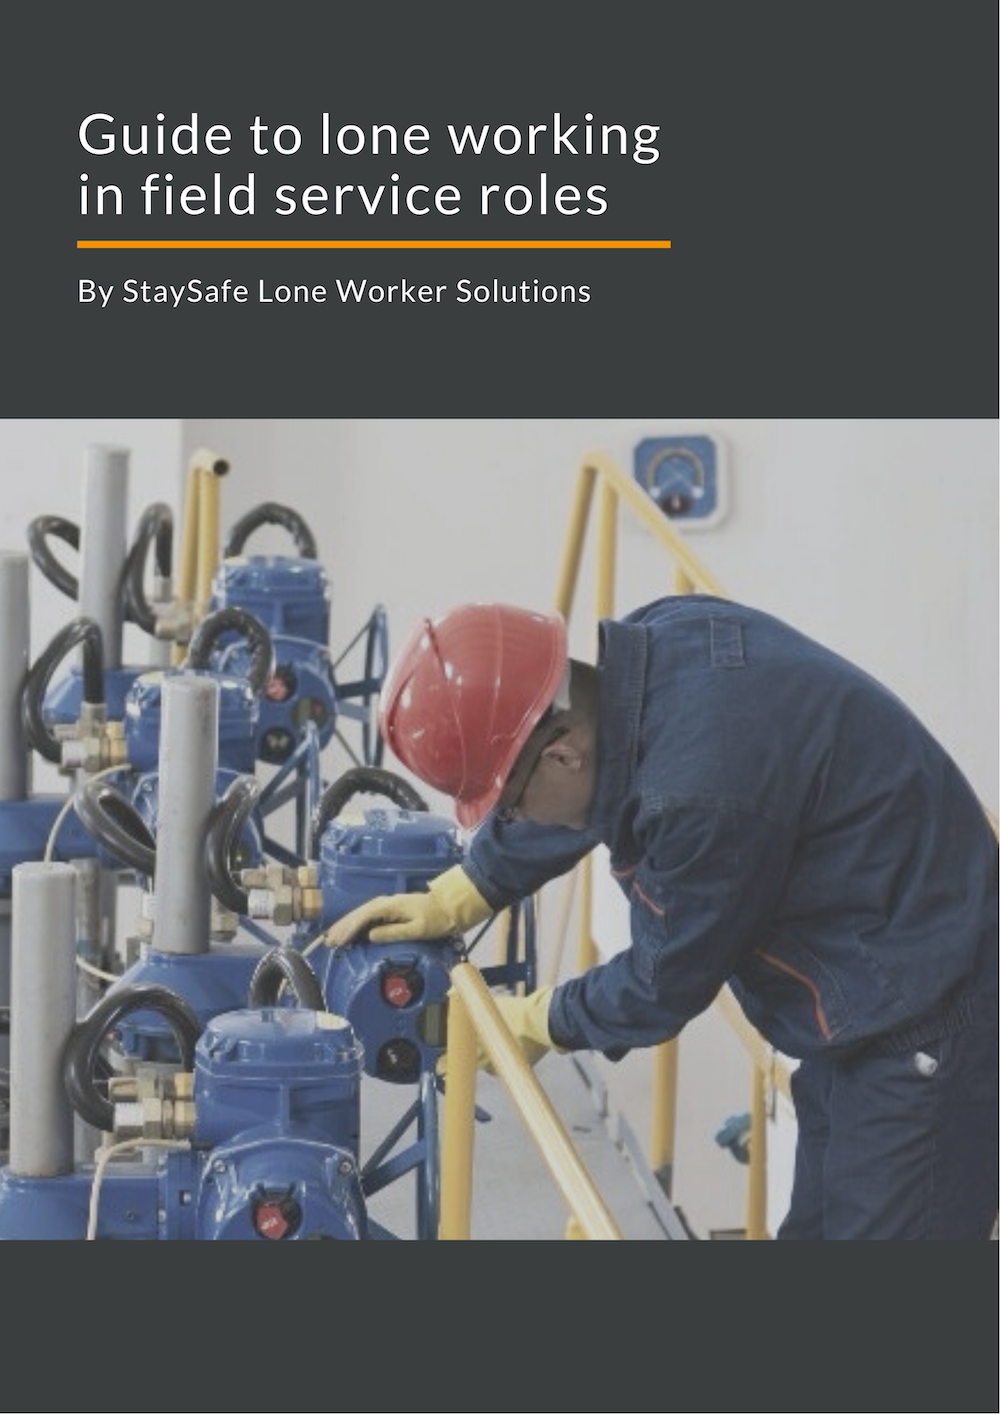 StaySafe Field Services Guide